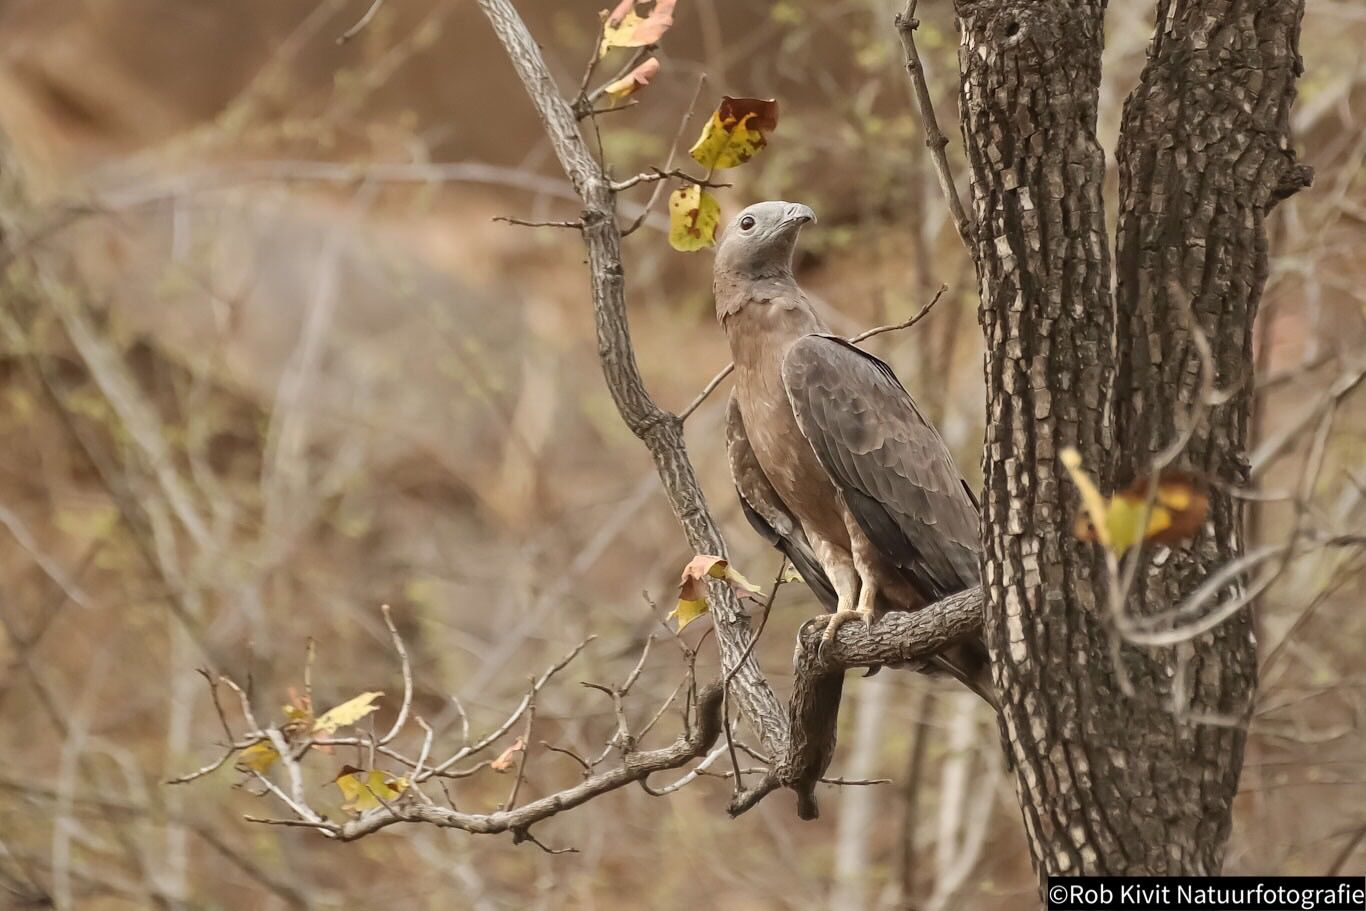 Aziatische wespendief (Crested honey buzzard)